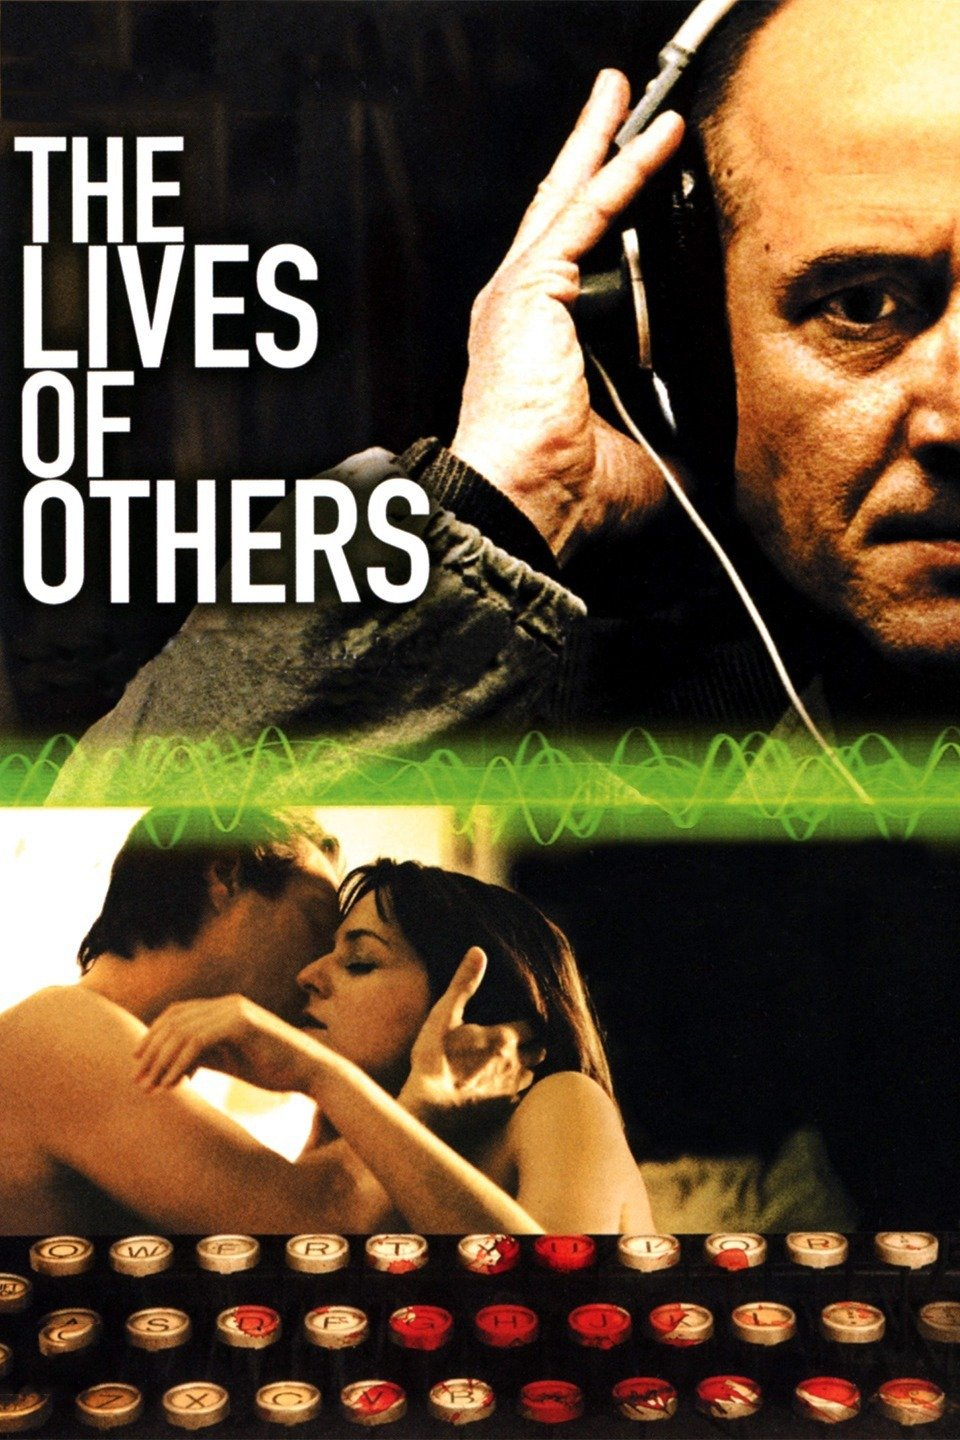 The Lives of Others (2006) - Directed by: Florian Henckel von DonnersmarckStarring: Ulrich Muhe, Sebastian Koch, Martina Gedeck, Ulrich TukurRated: R for Some Sexuality/NudityRunning Time: 2 h 17 mTMM Score: 5 stars out of 5STRENGTHS: Writing, Directing, Acting, MessageWEAKNESSES: -